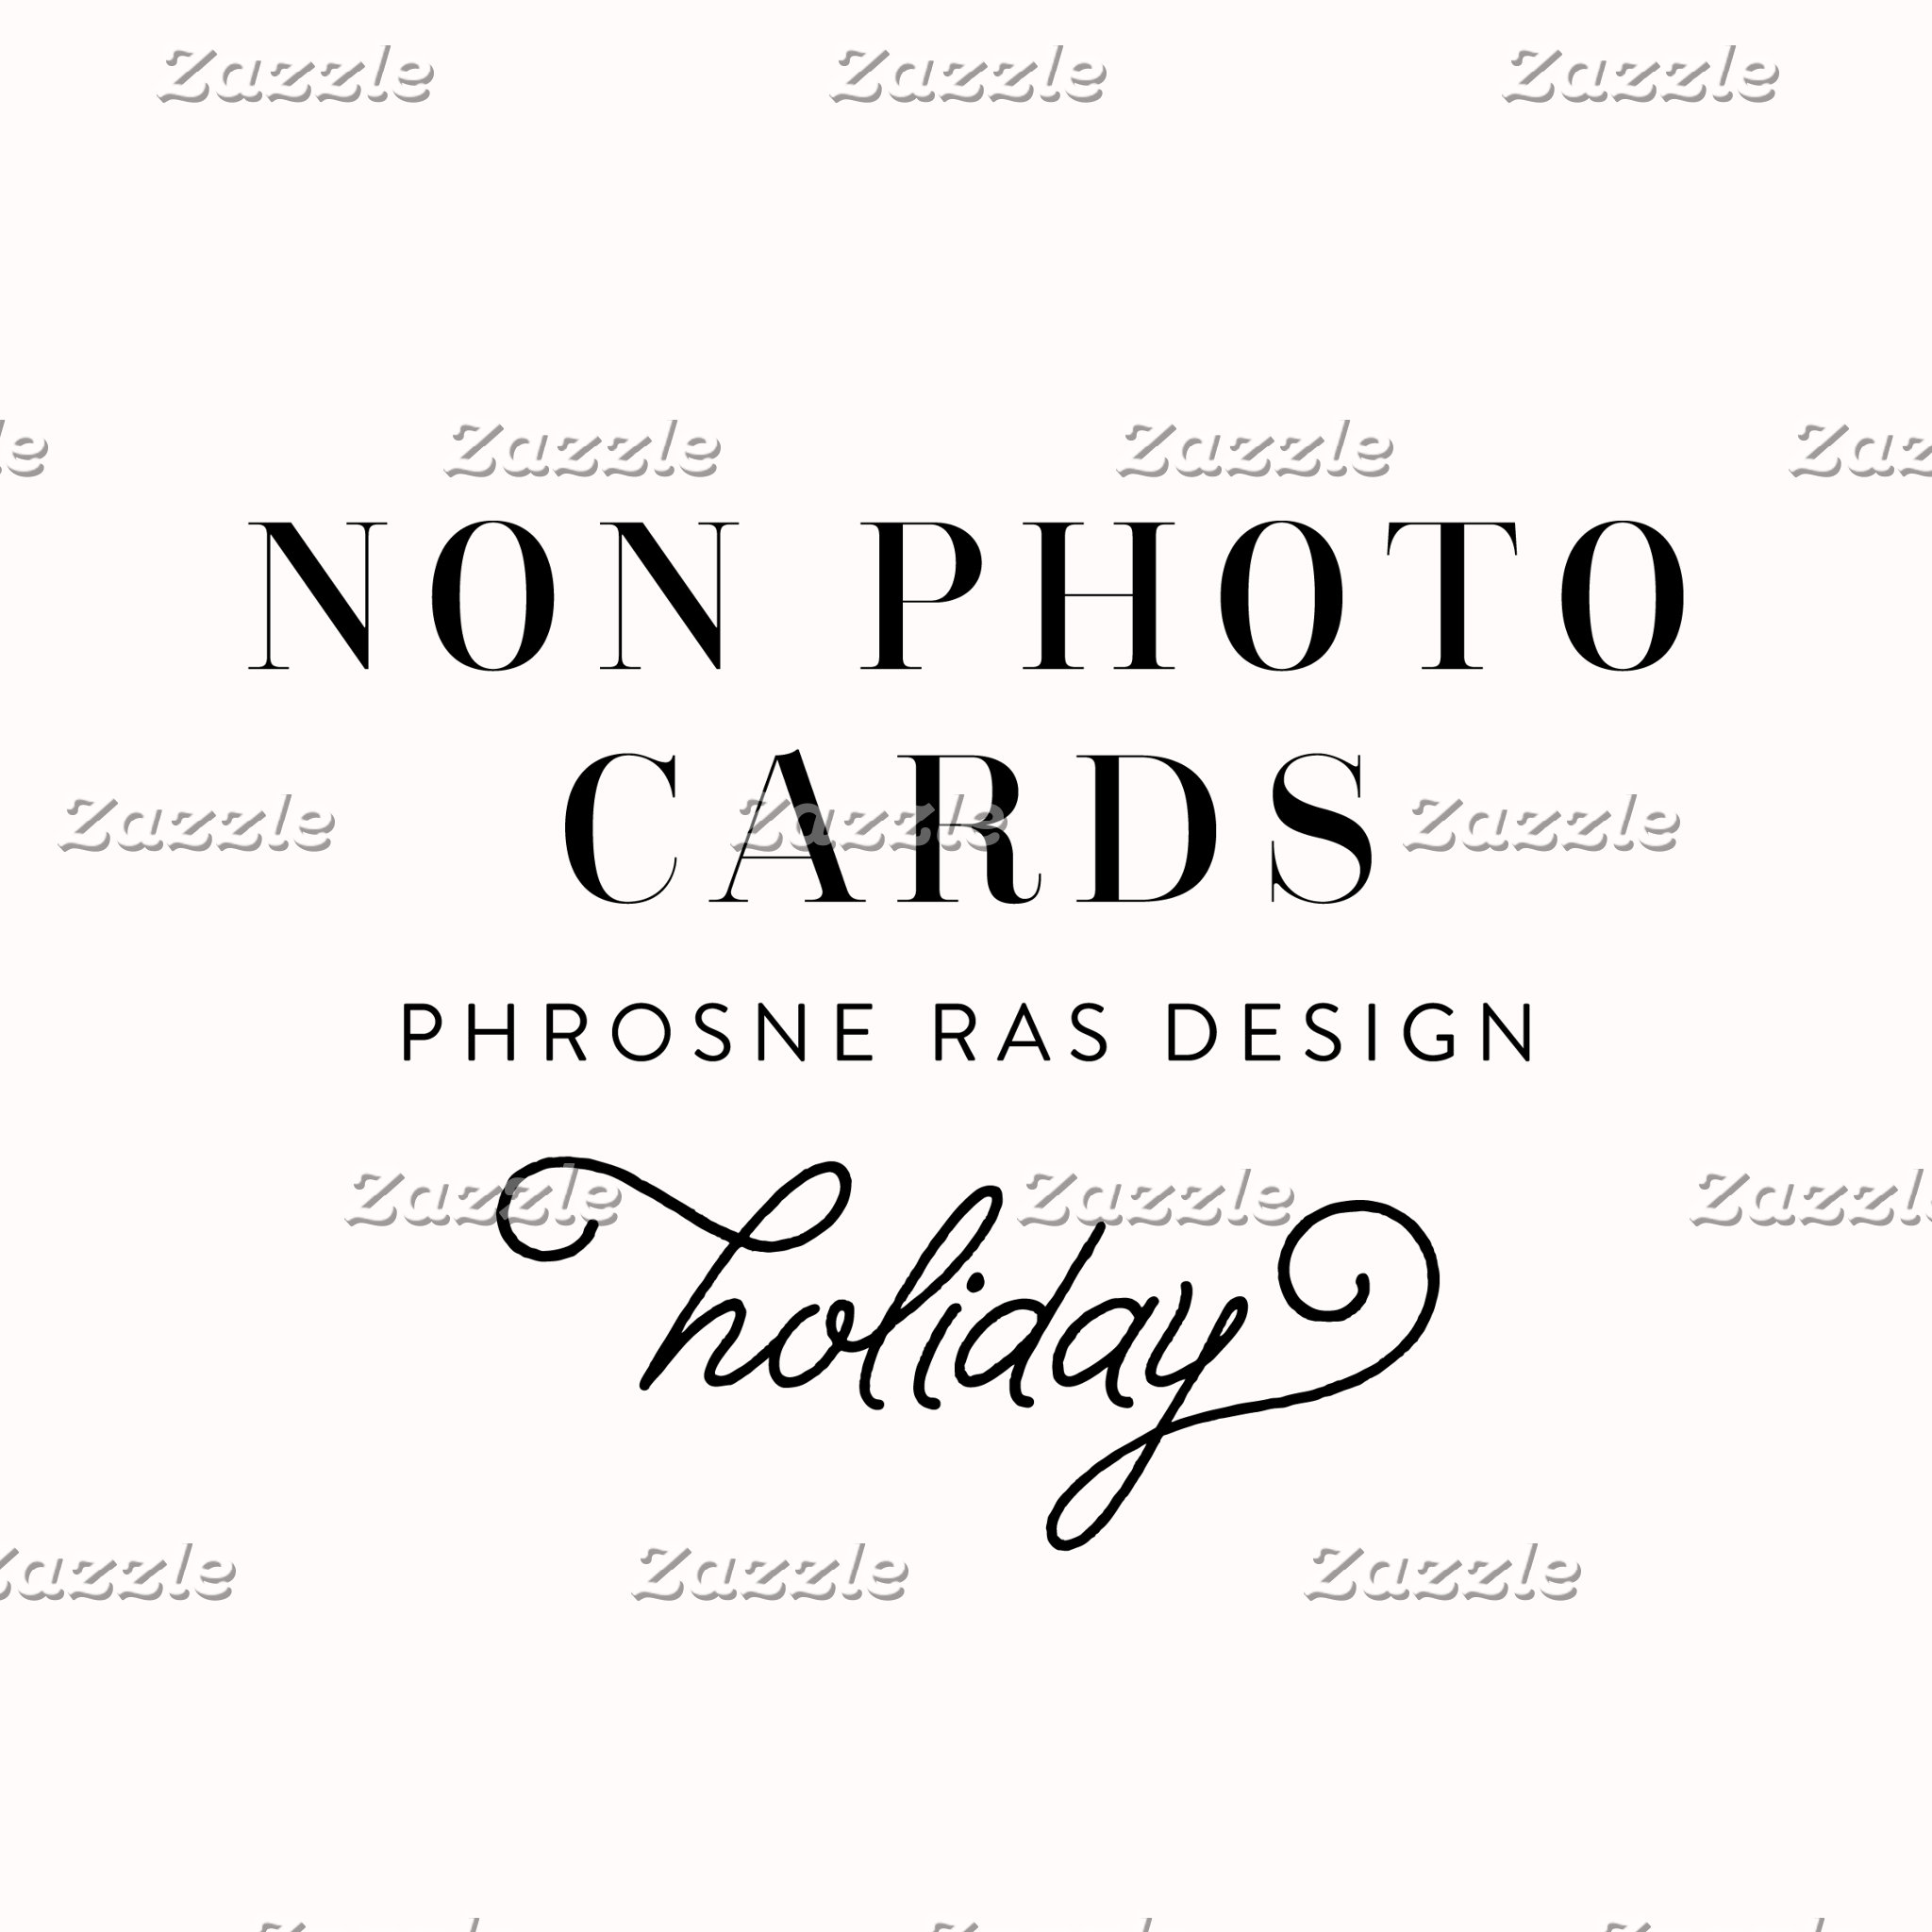 Non Photo Cards